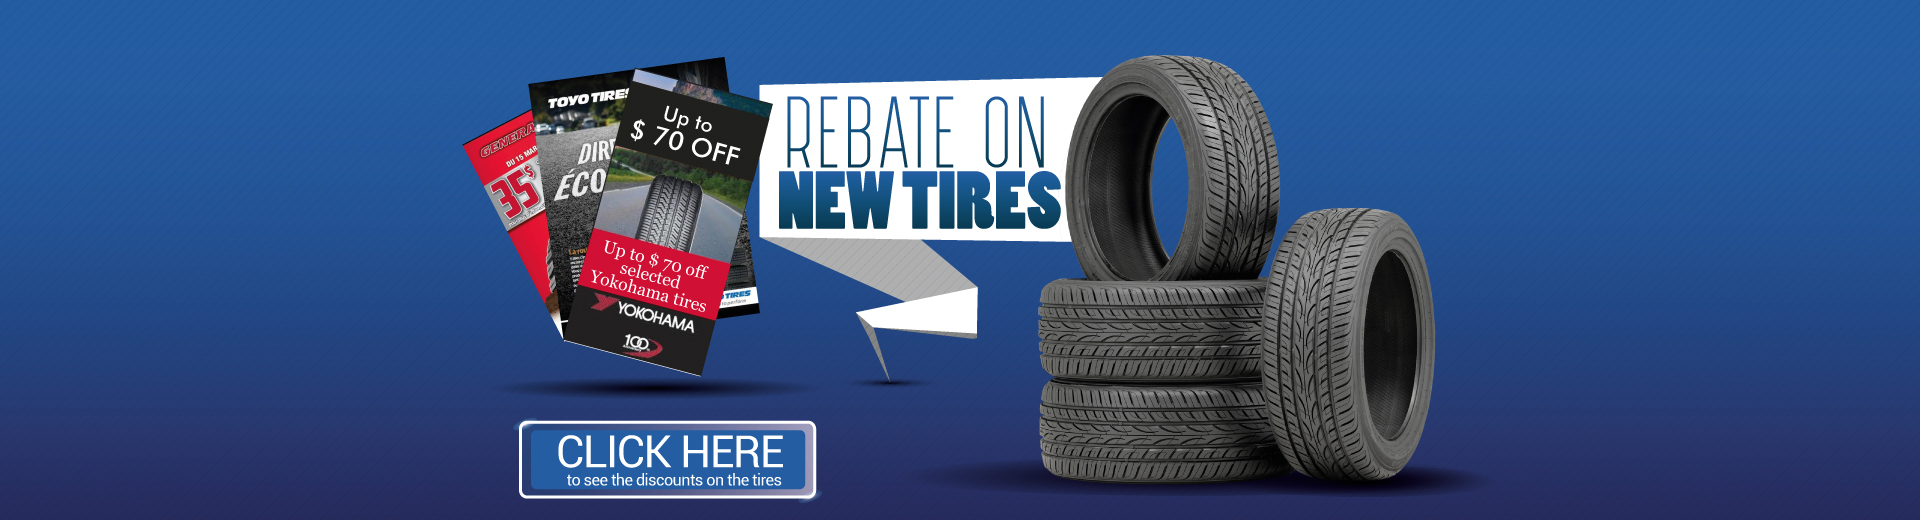 rebate on tire